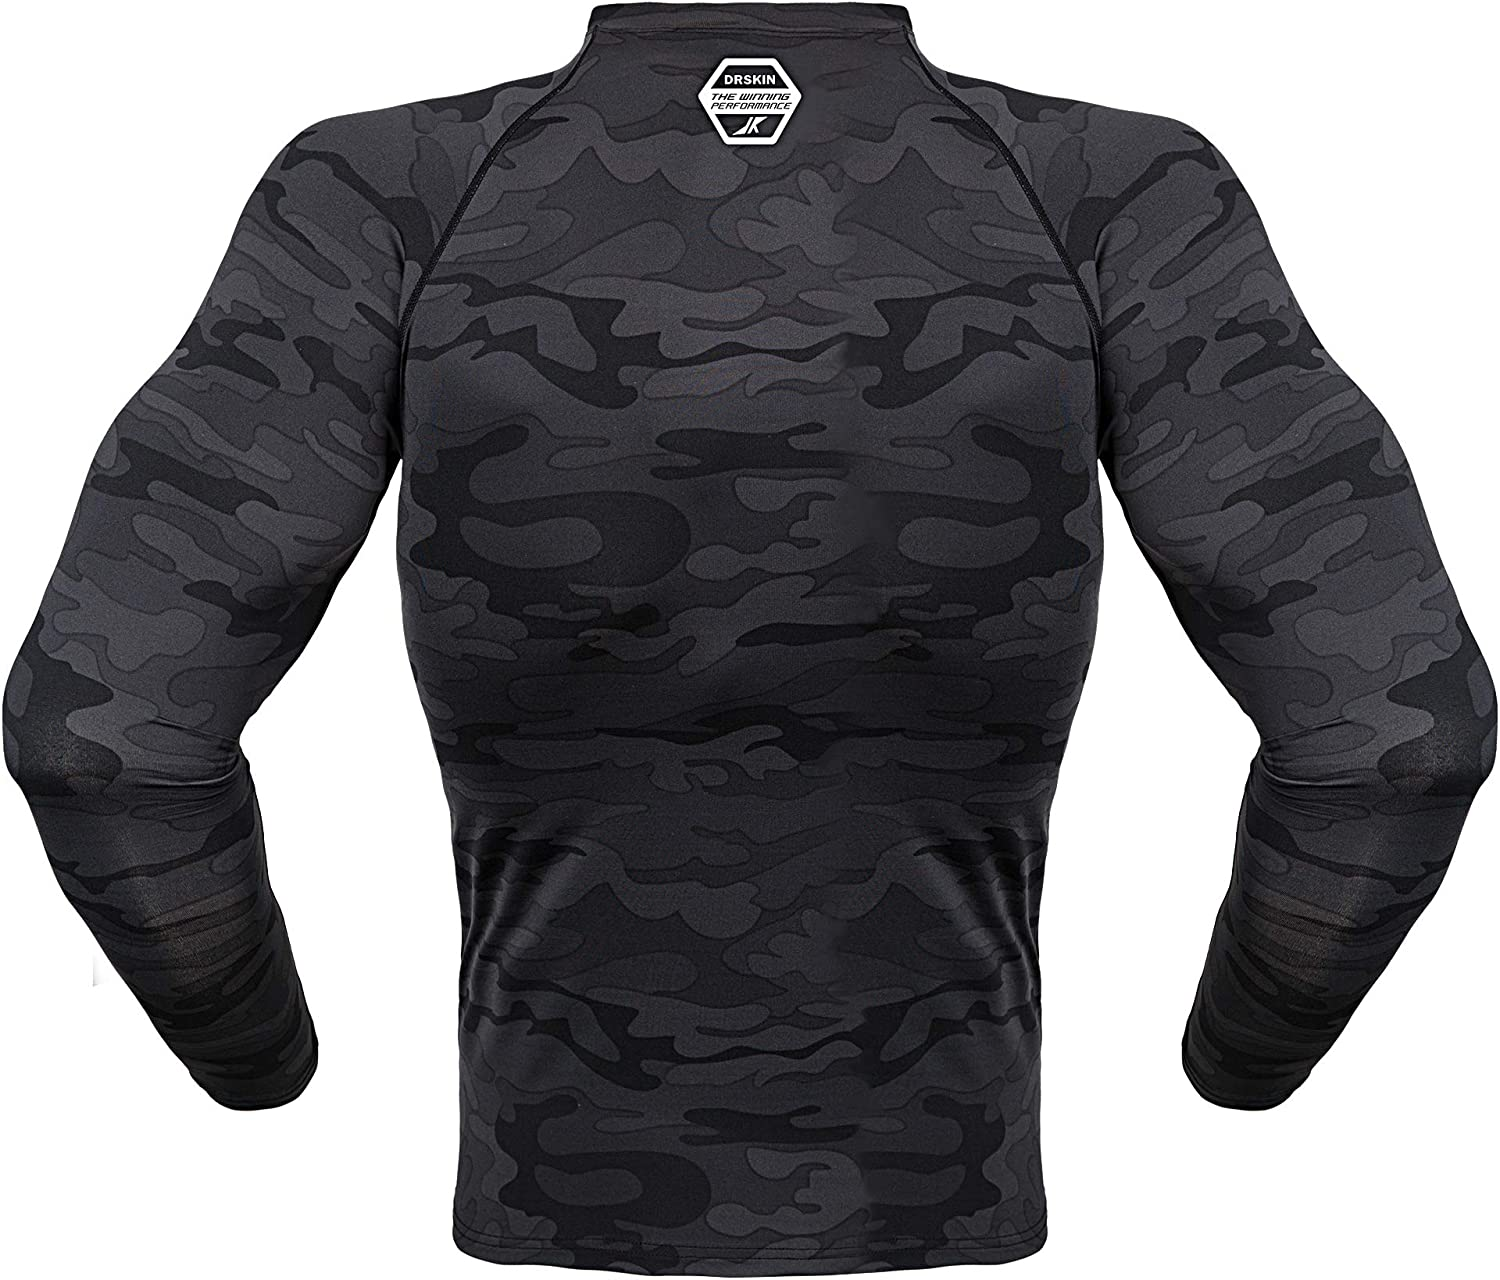 DRSKIN Herren Thermo Wintergear Kompressions-Baselayer aus Fleece mit Langen /Ärmeln